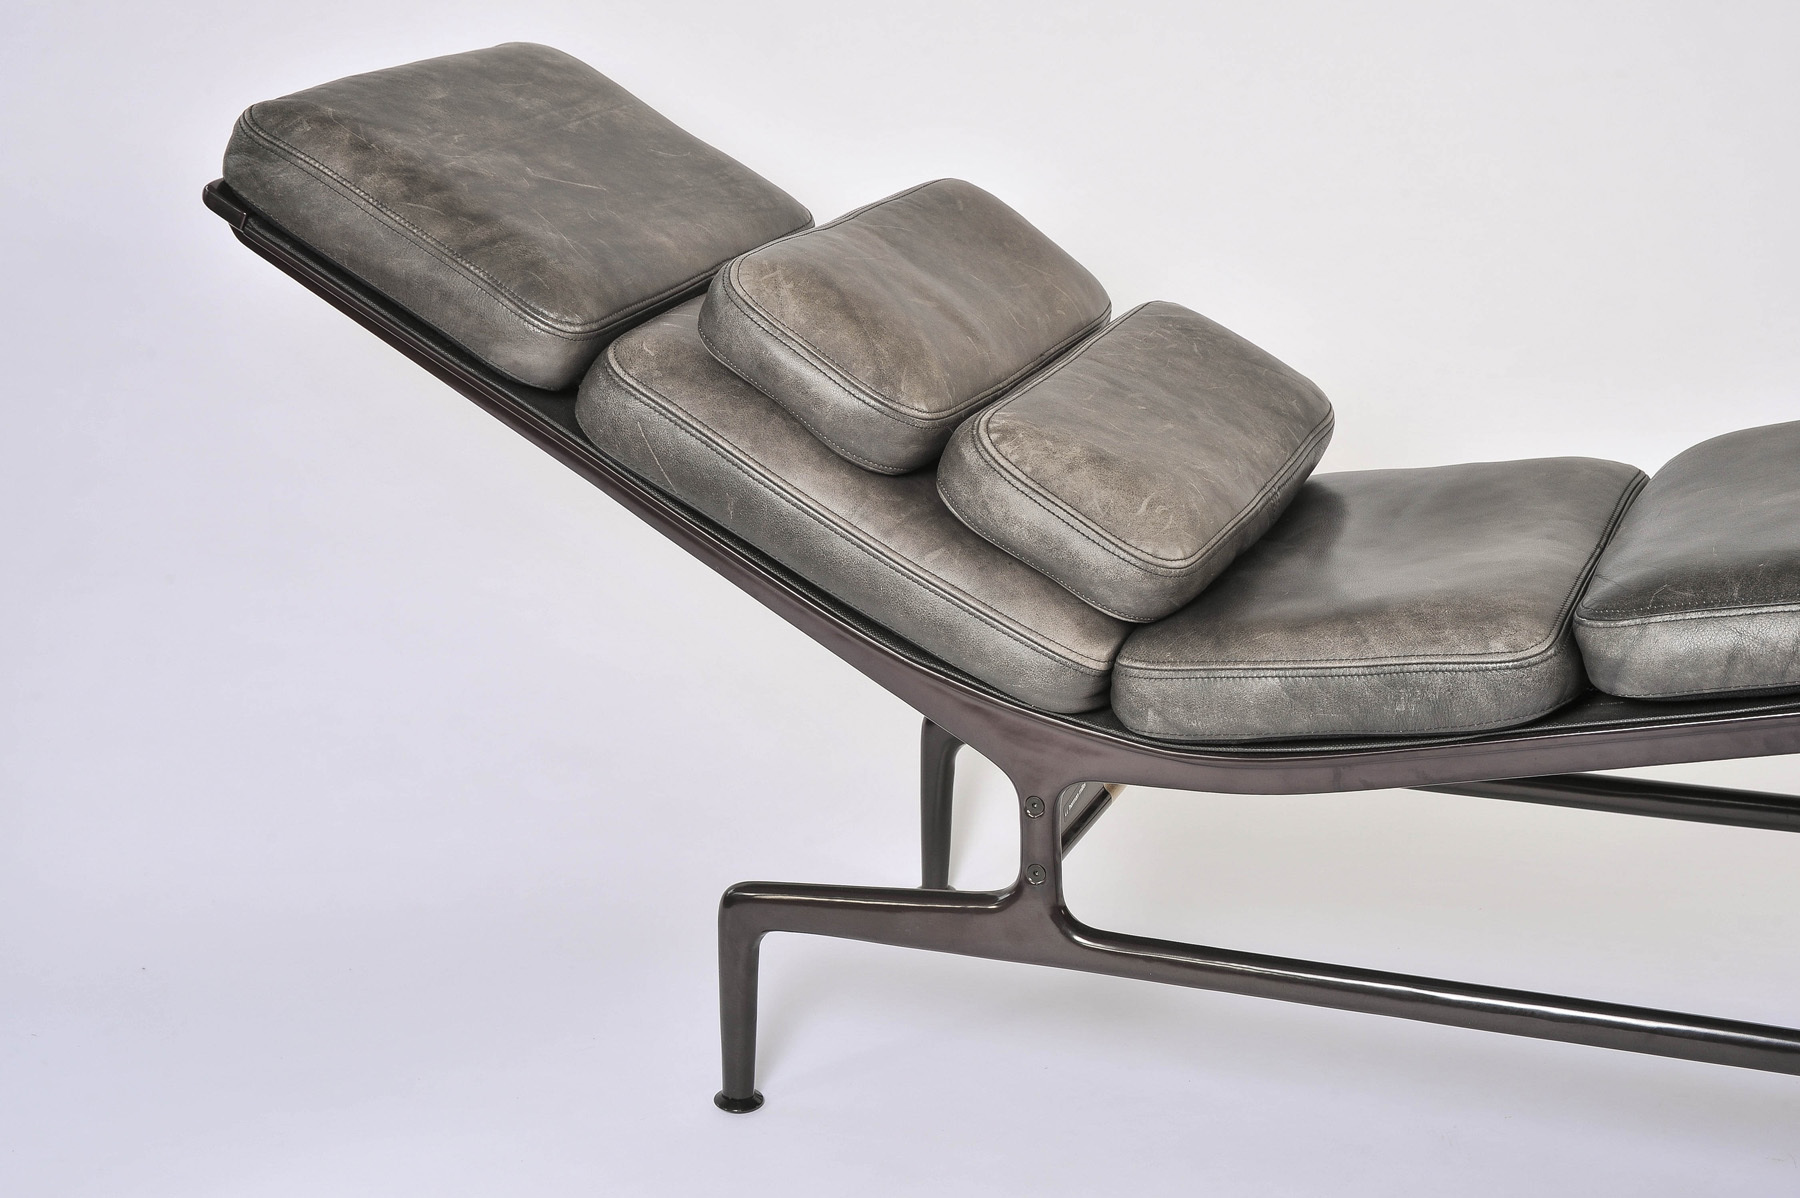 Charles eames 39 billy wilder 39 chaise longue valerie wade for Charles eames chaise a bascule